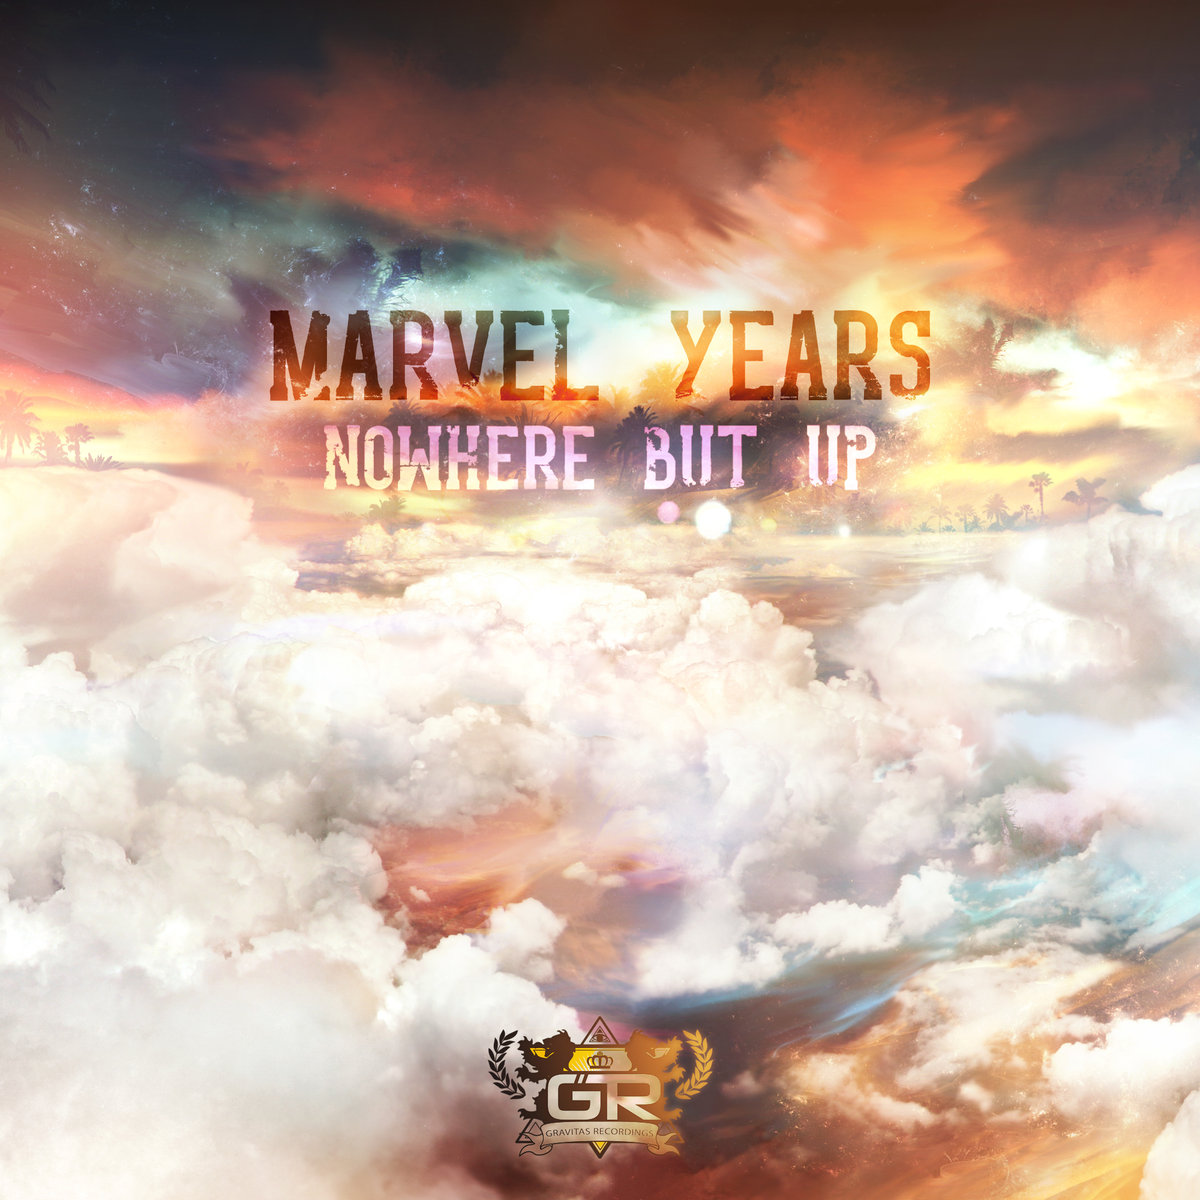 Marvel Years - Nowhere But Up (artwork)